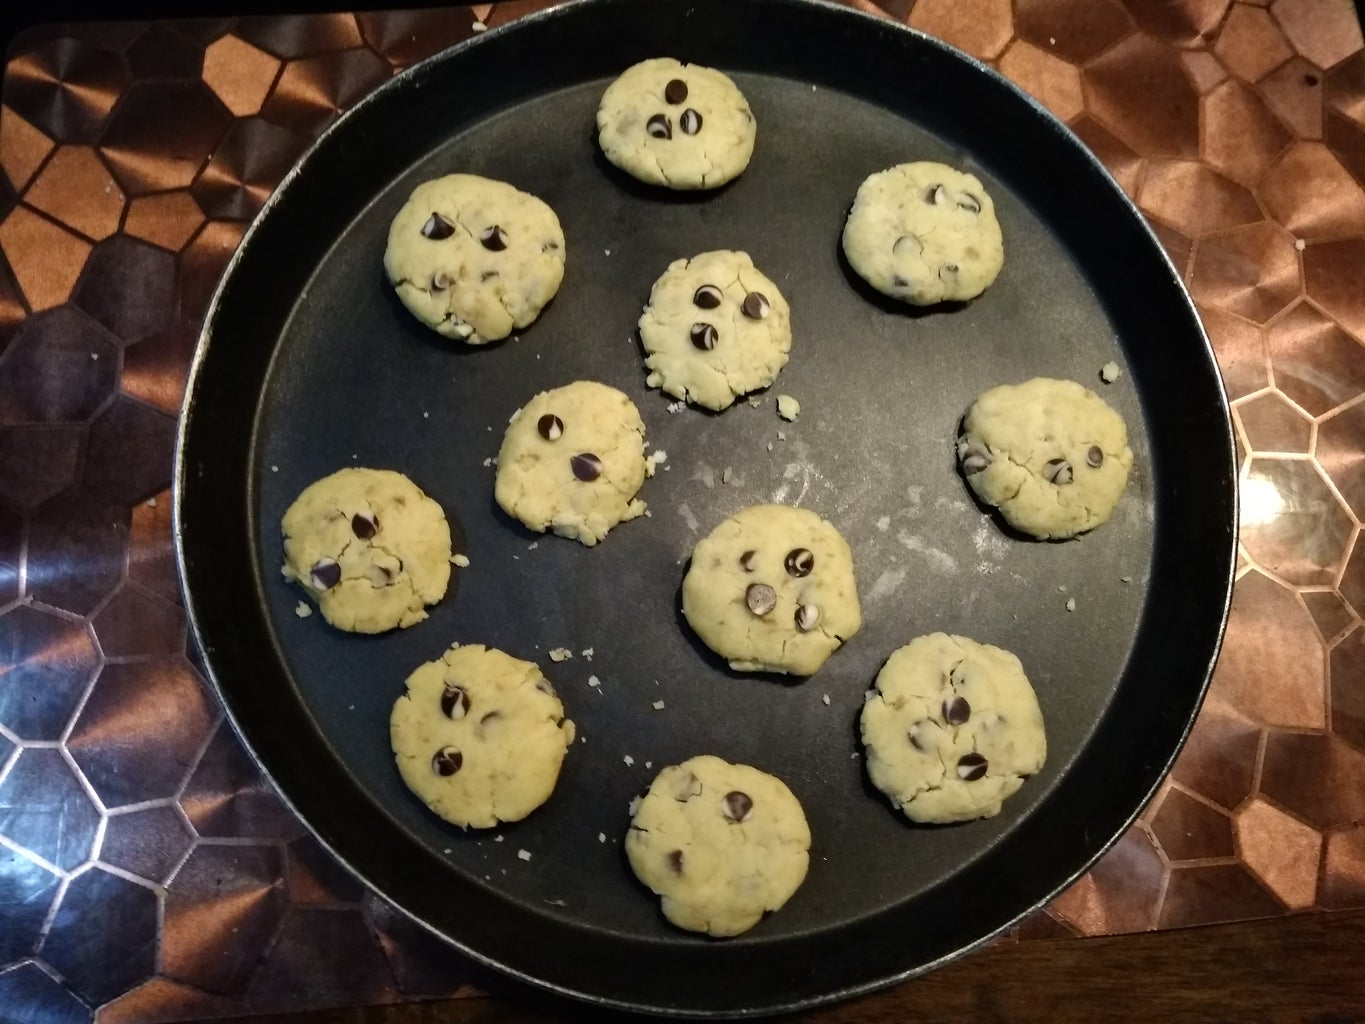 Shaping the Cookies